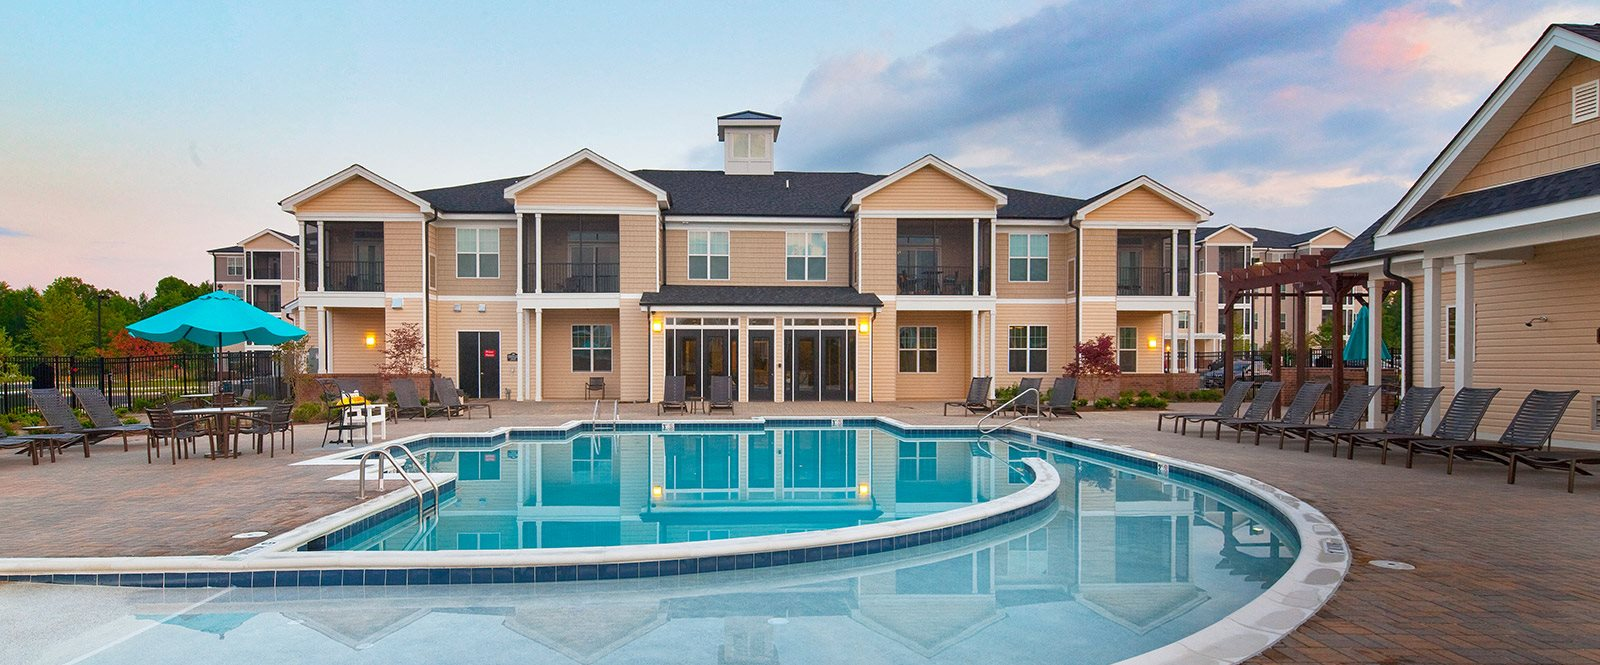 Pool Side Relaxing Area at Abberly Crest Apartment Homes by HHHunt, Lexington Park, MD